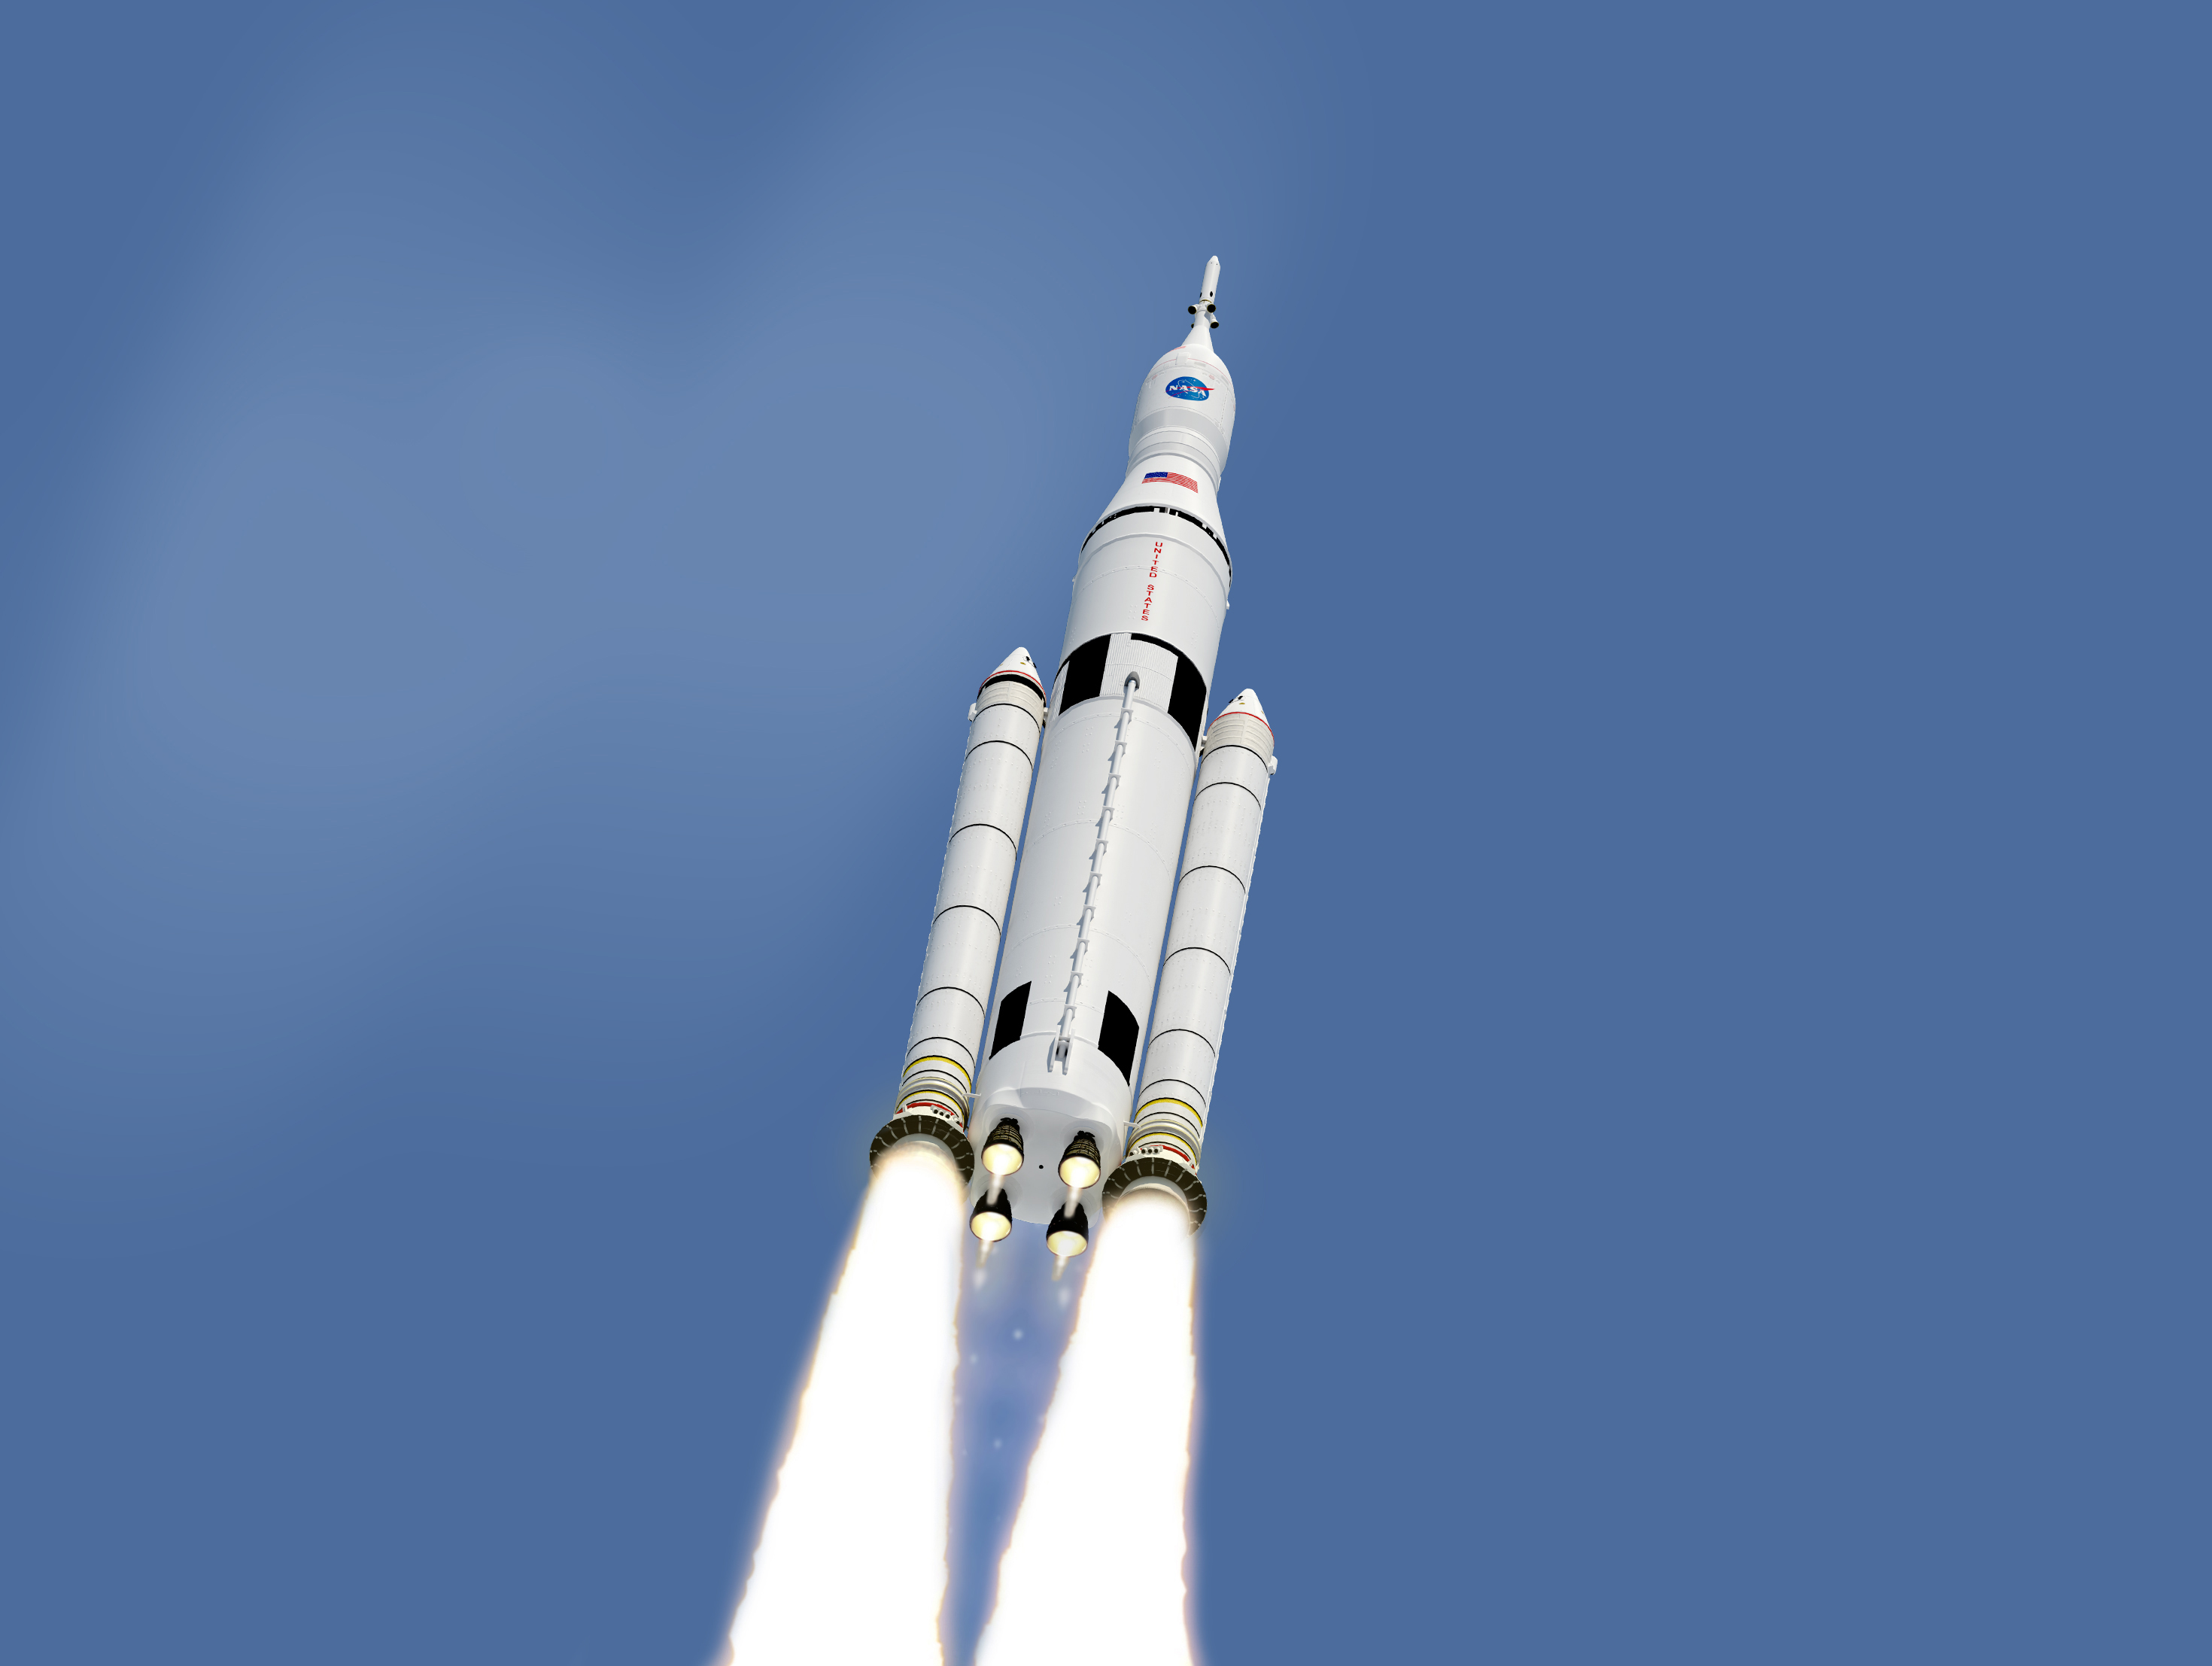 nass space station rocket - photo #16